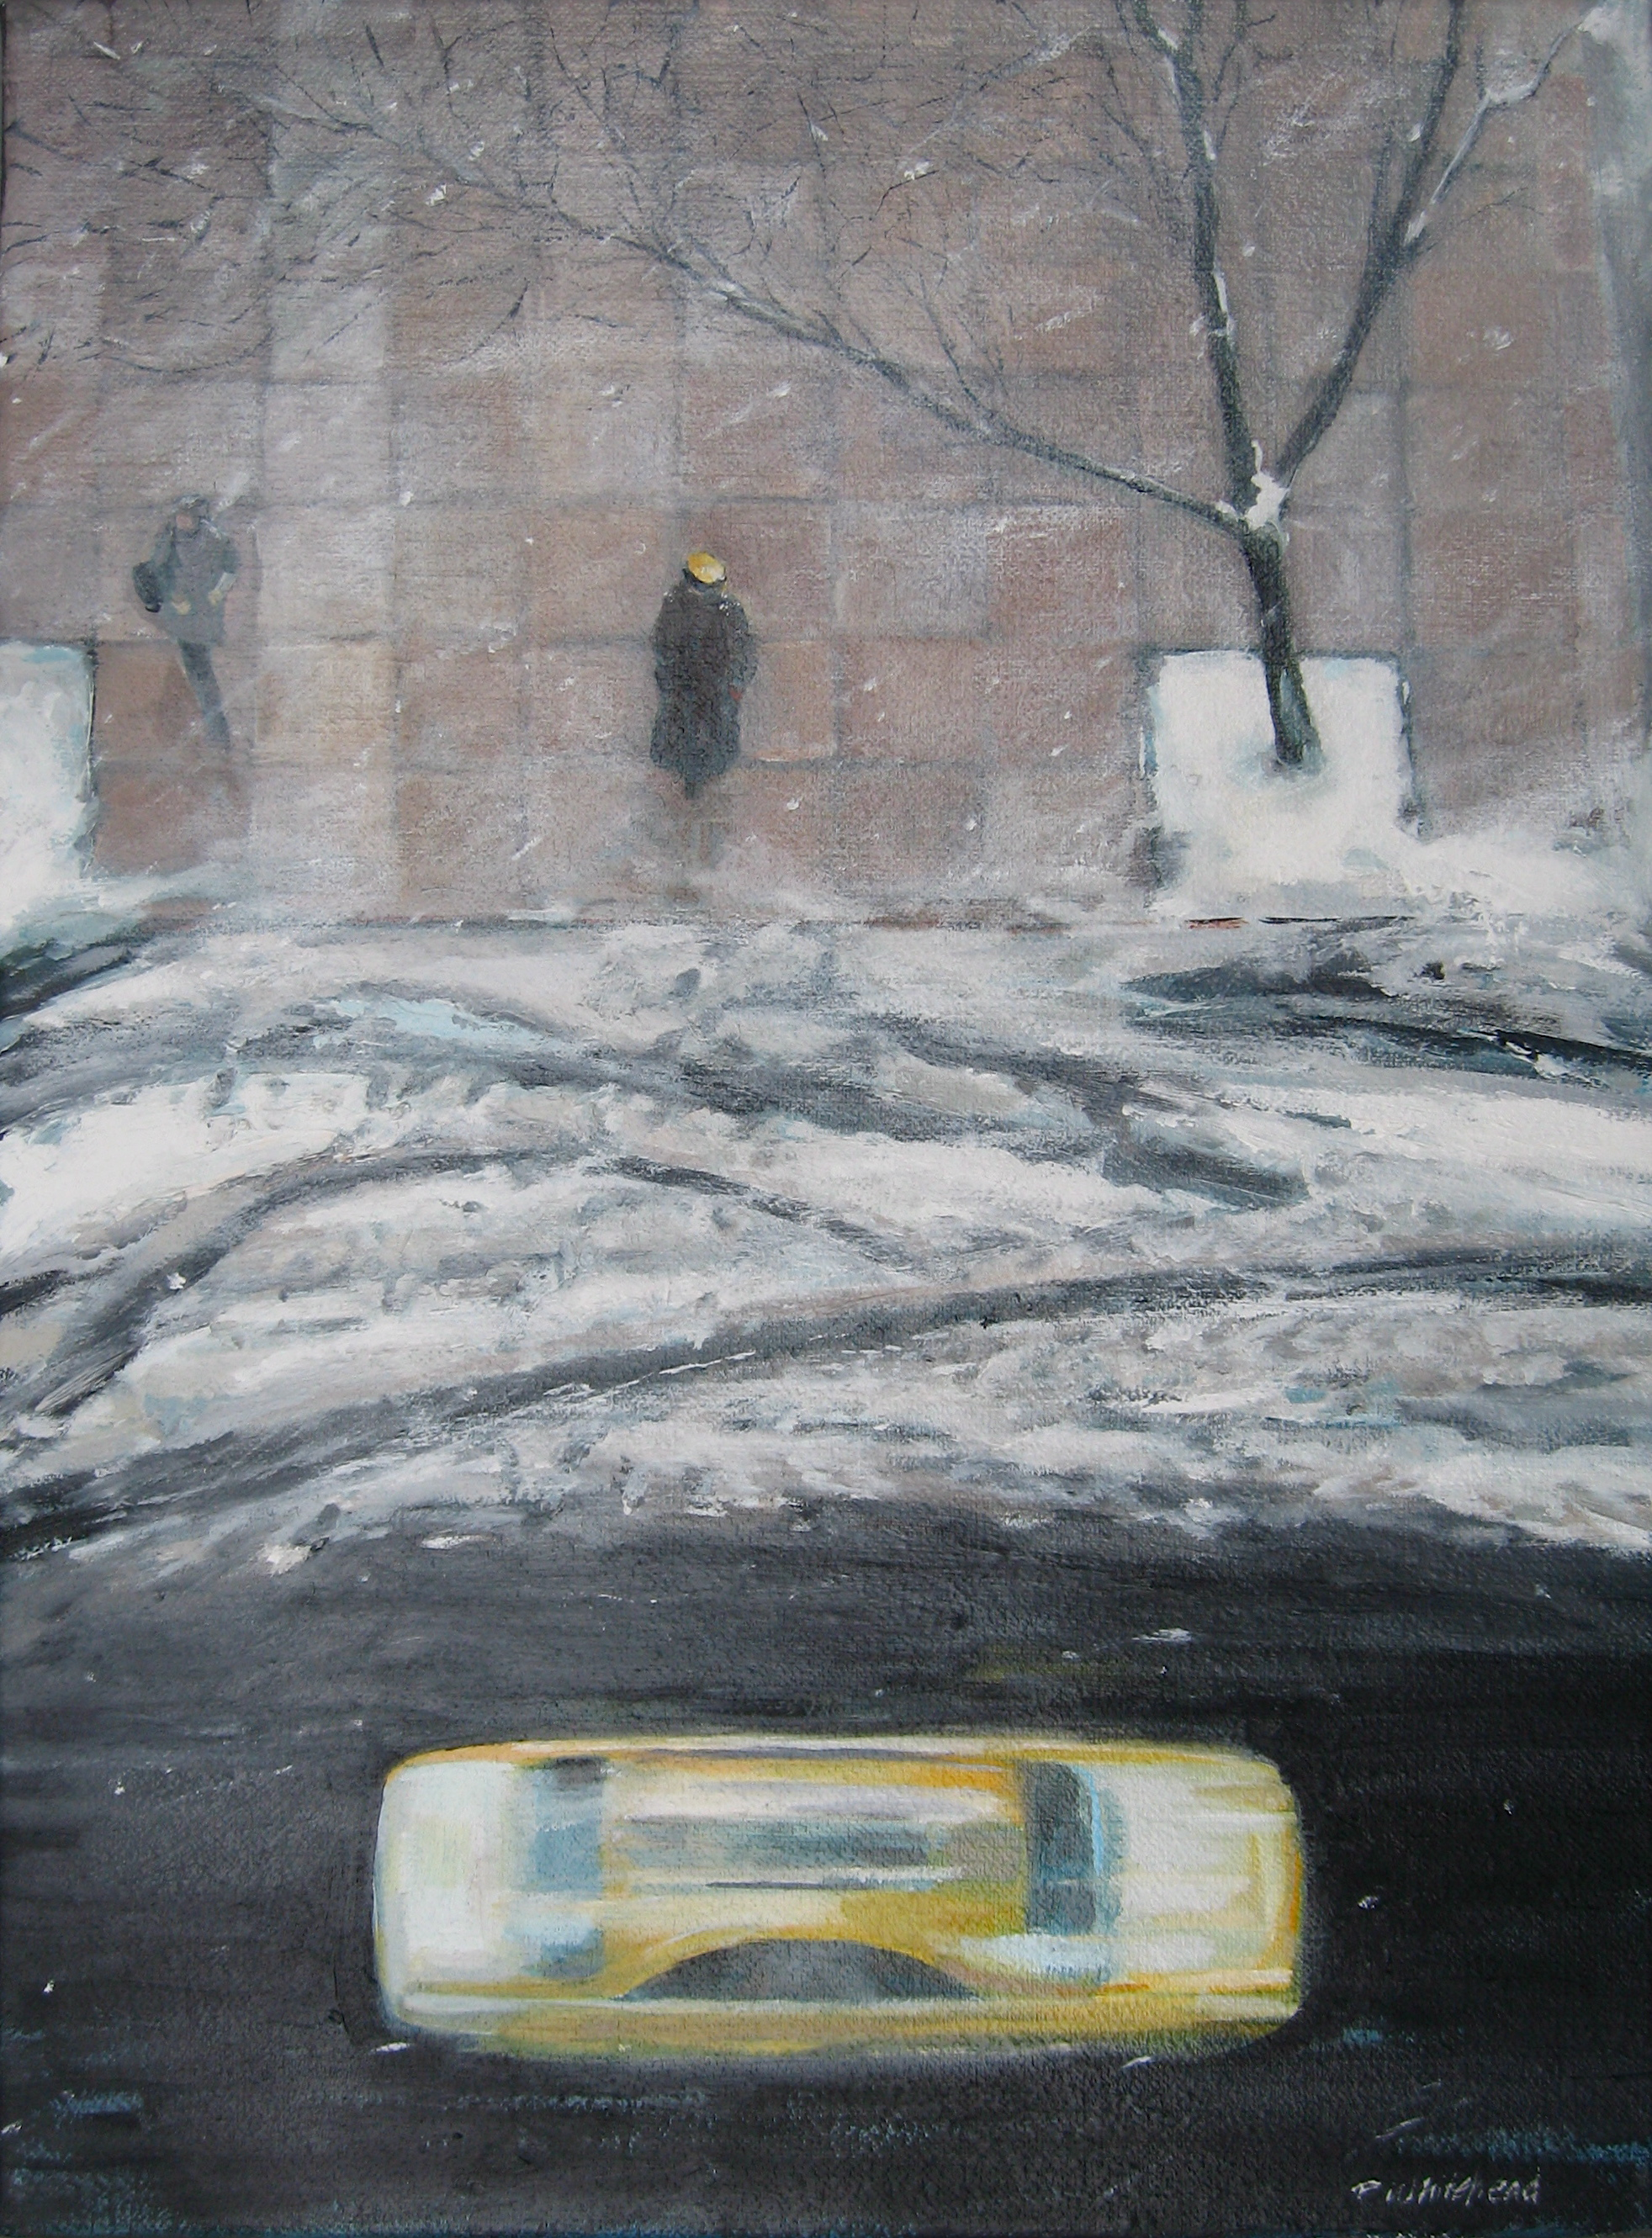 NYC:Taxi (winter), painting by me